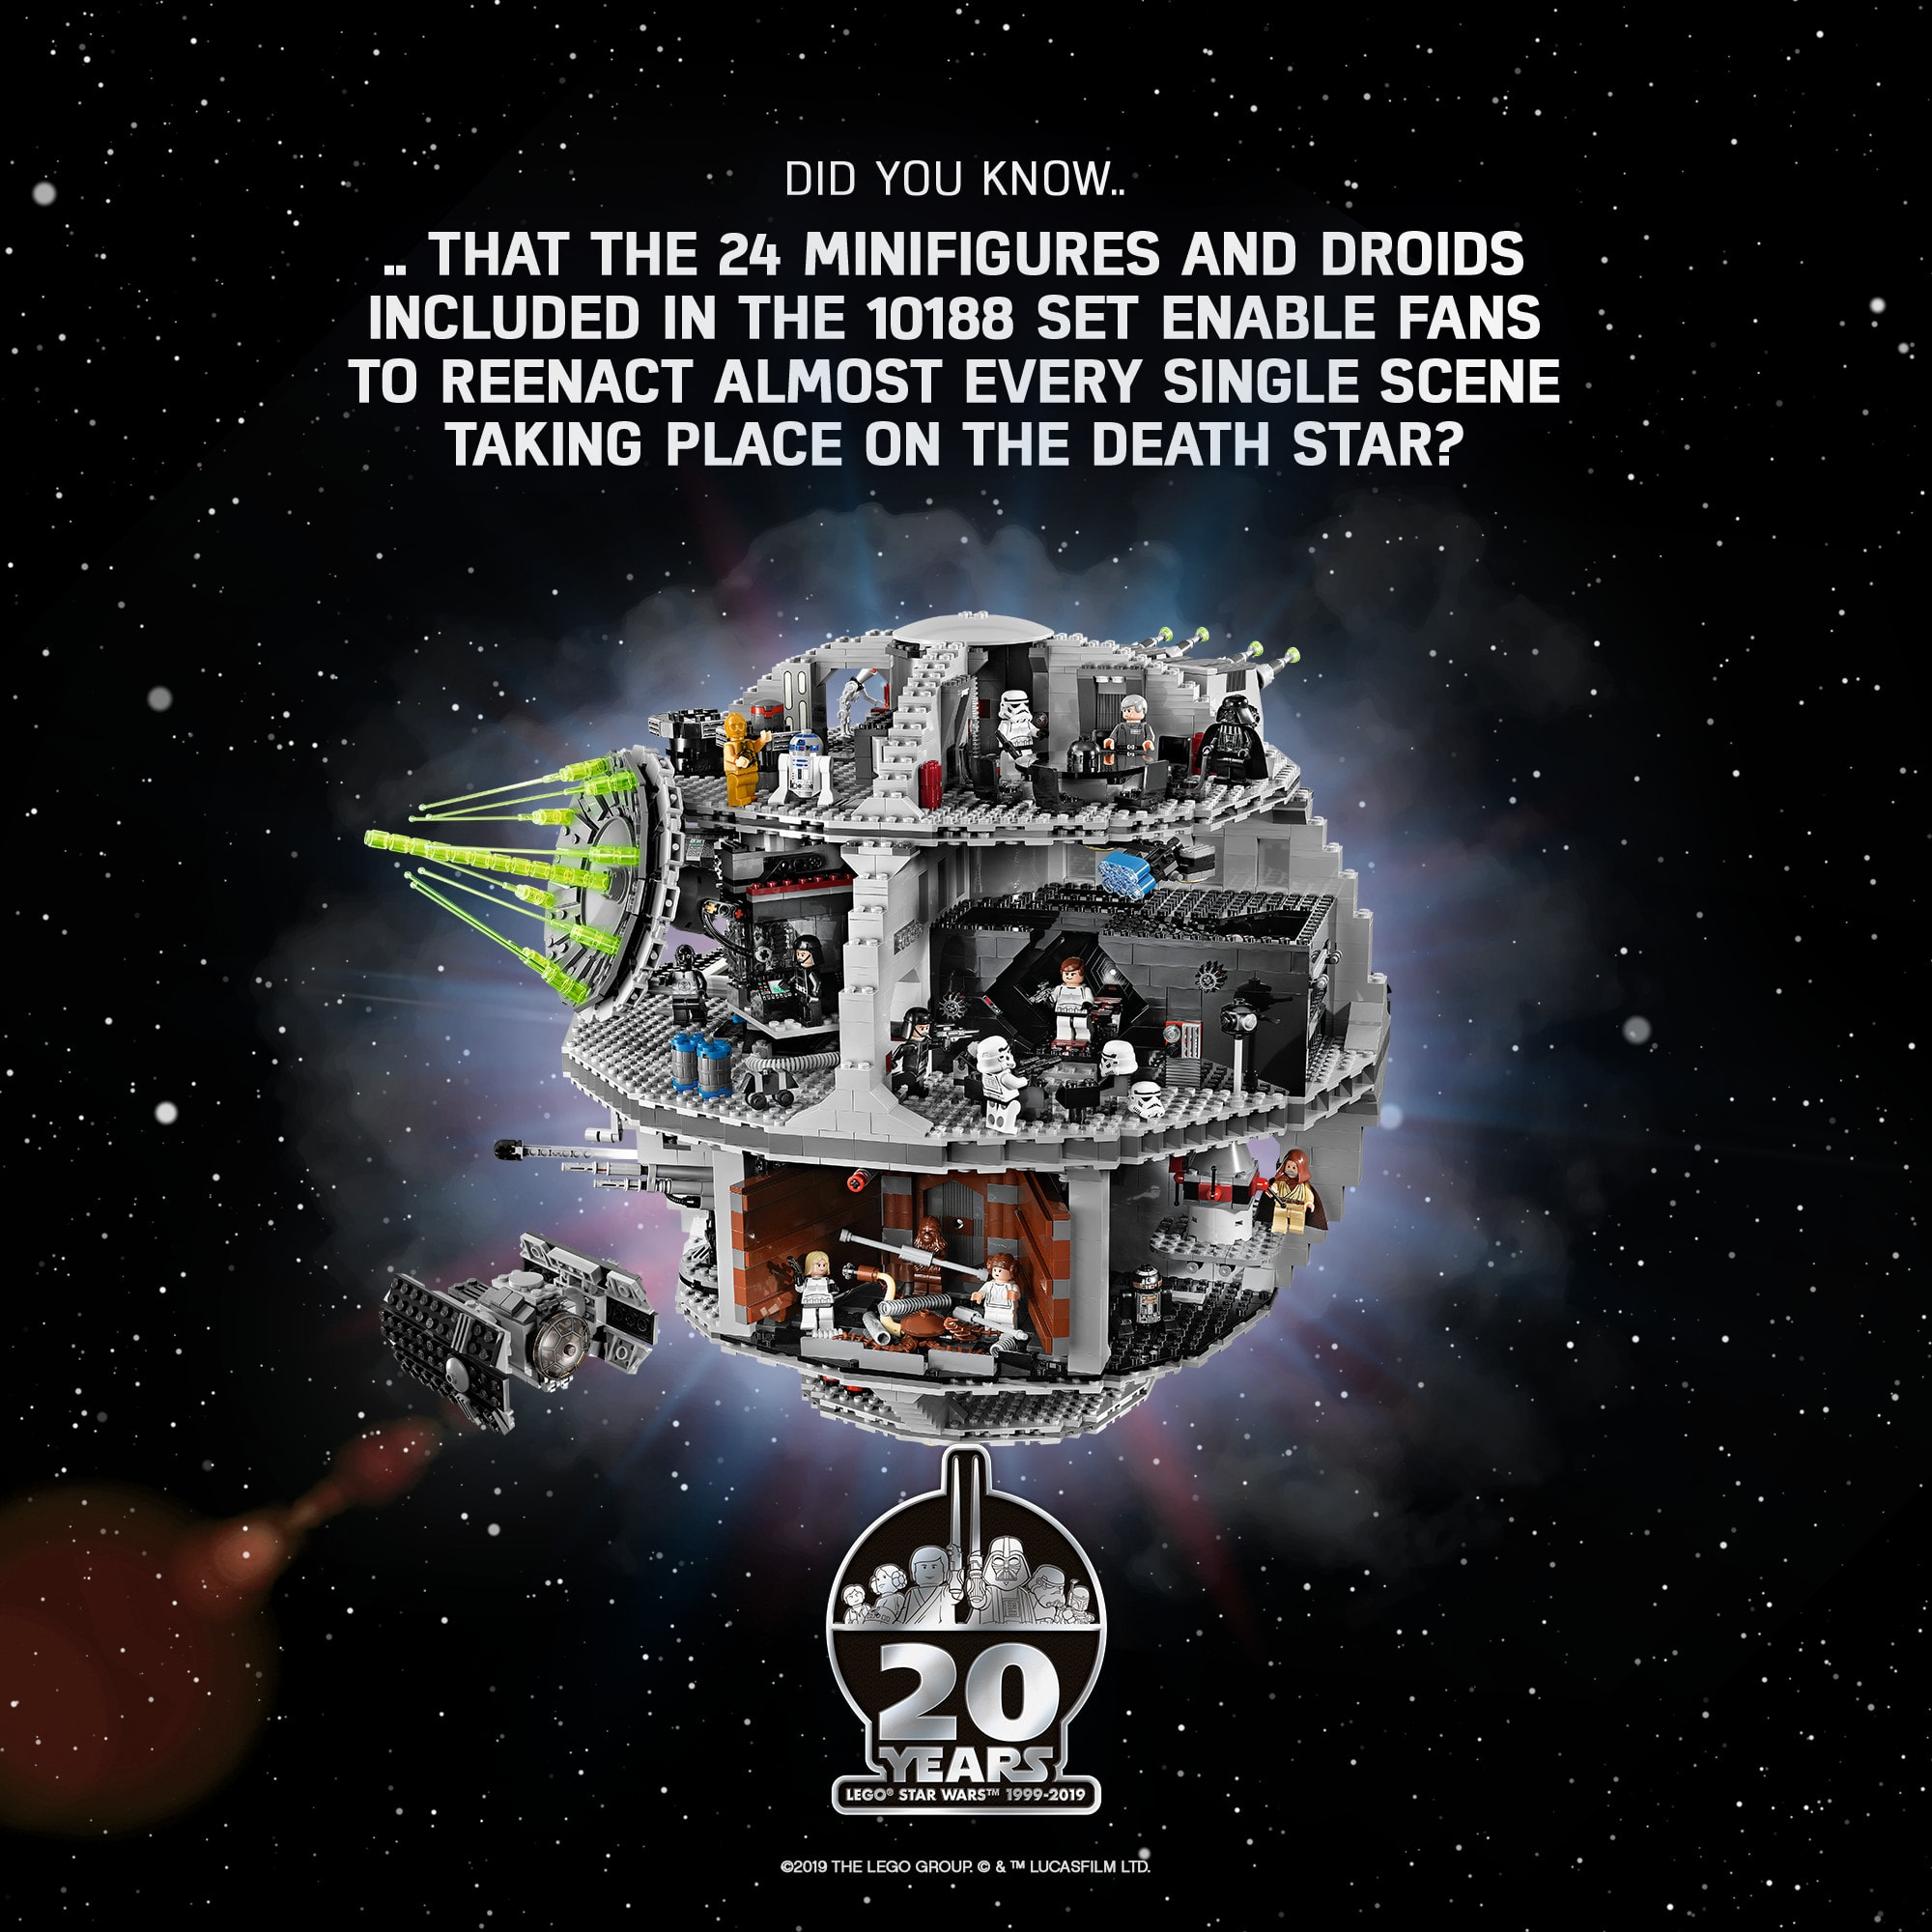 Remake every scene on the Death Star with the 24 Minifigures and Droids included with the 10188 LEGO Death Star Set.